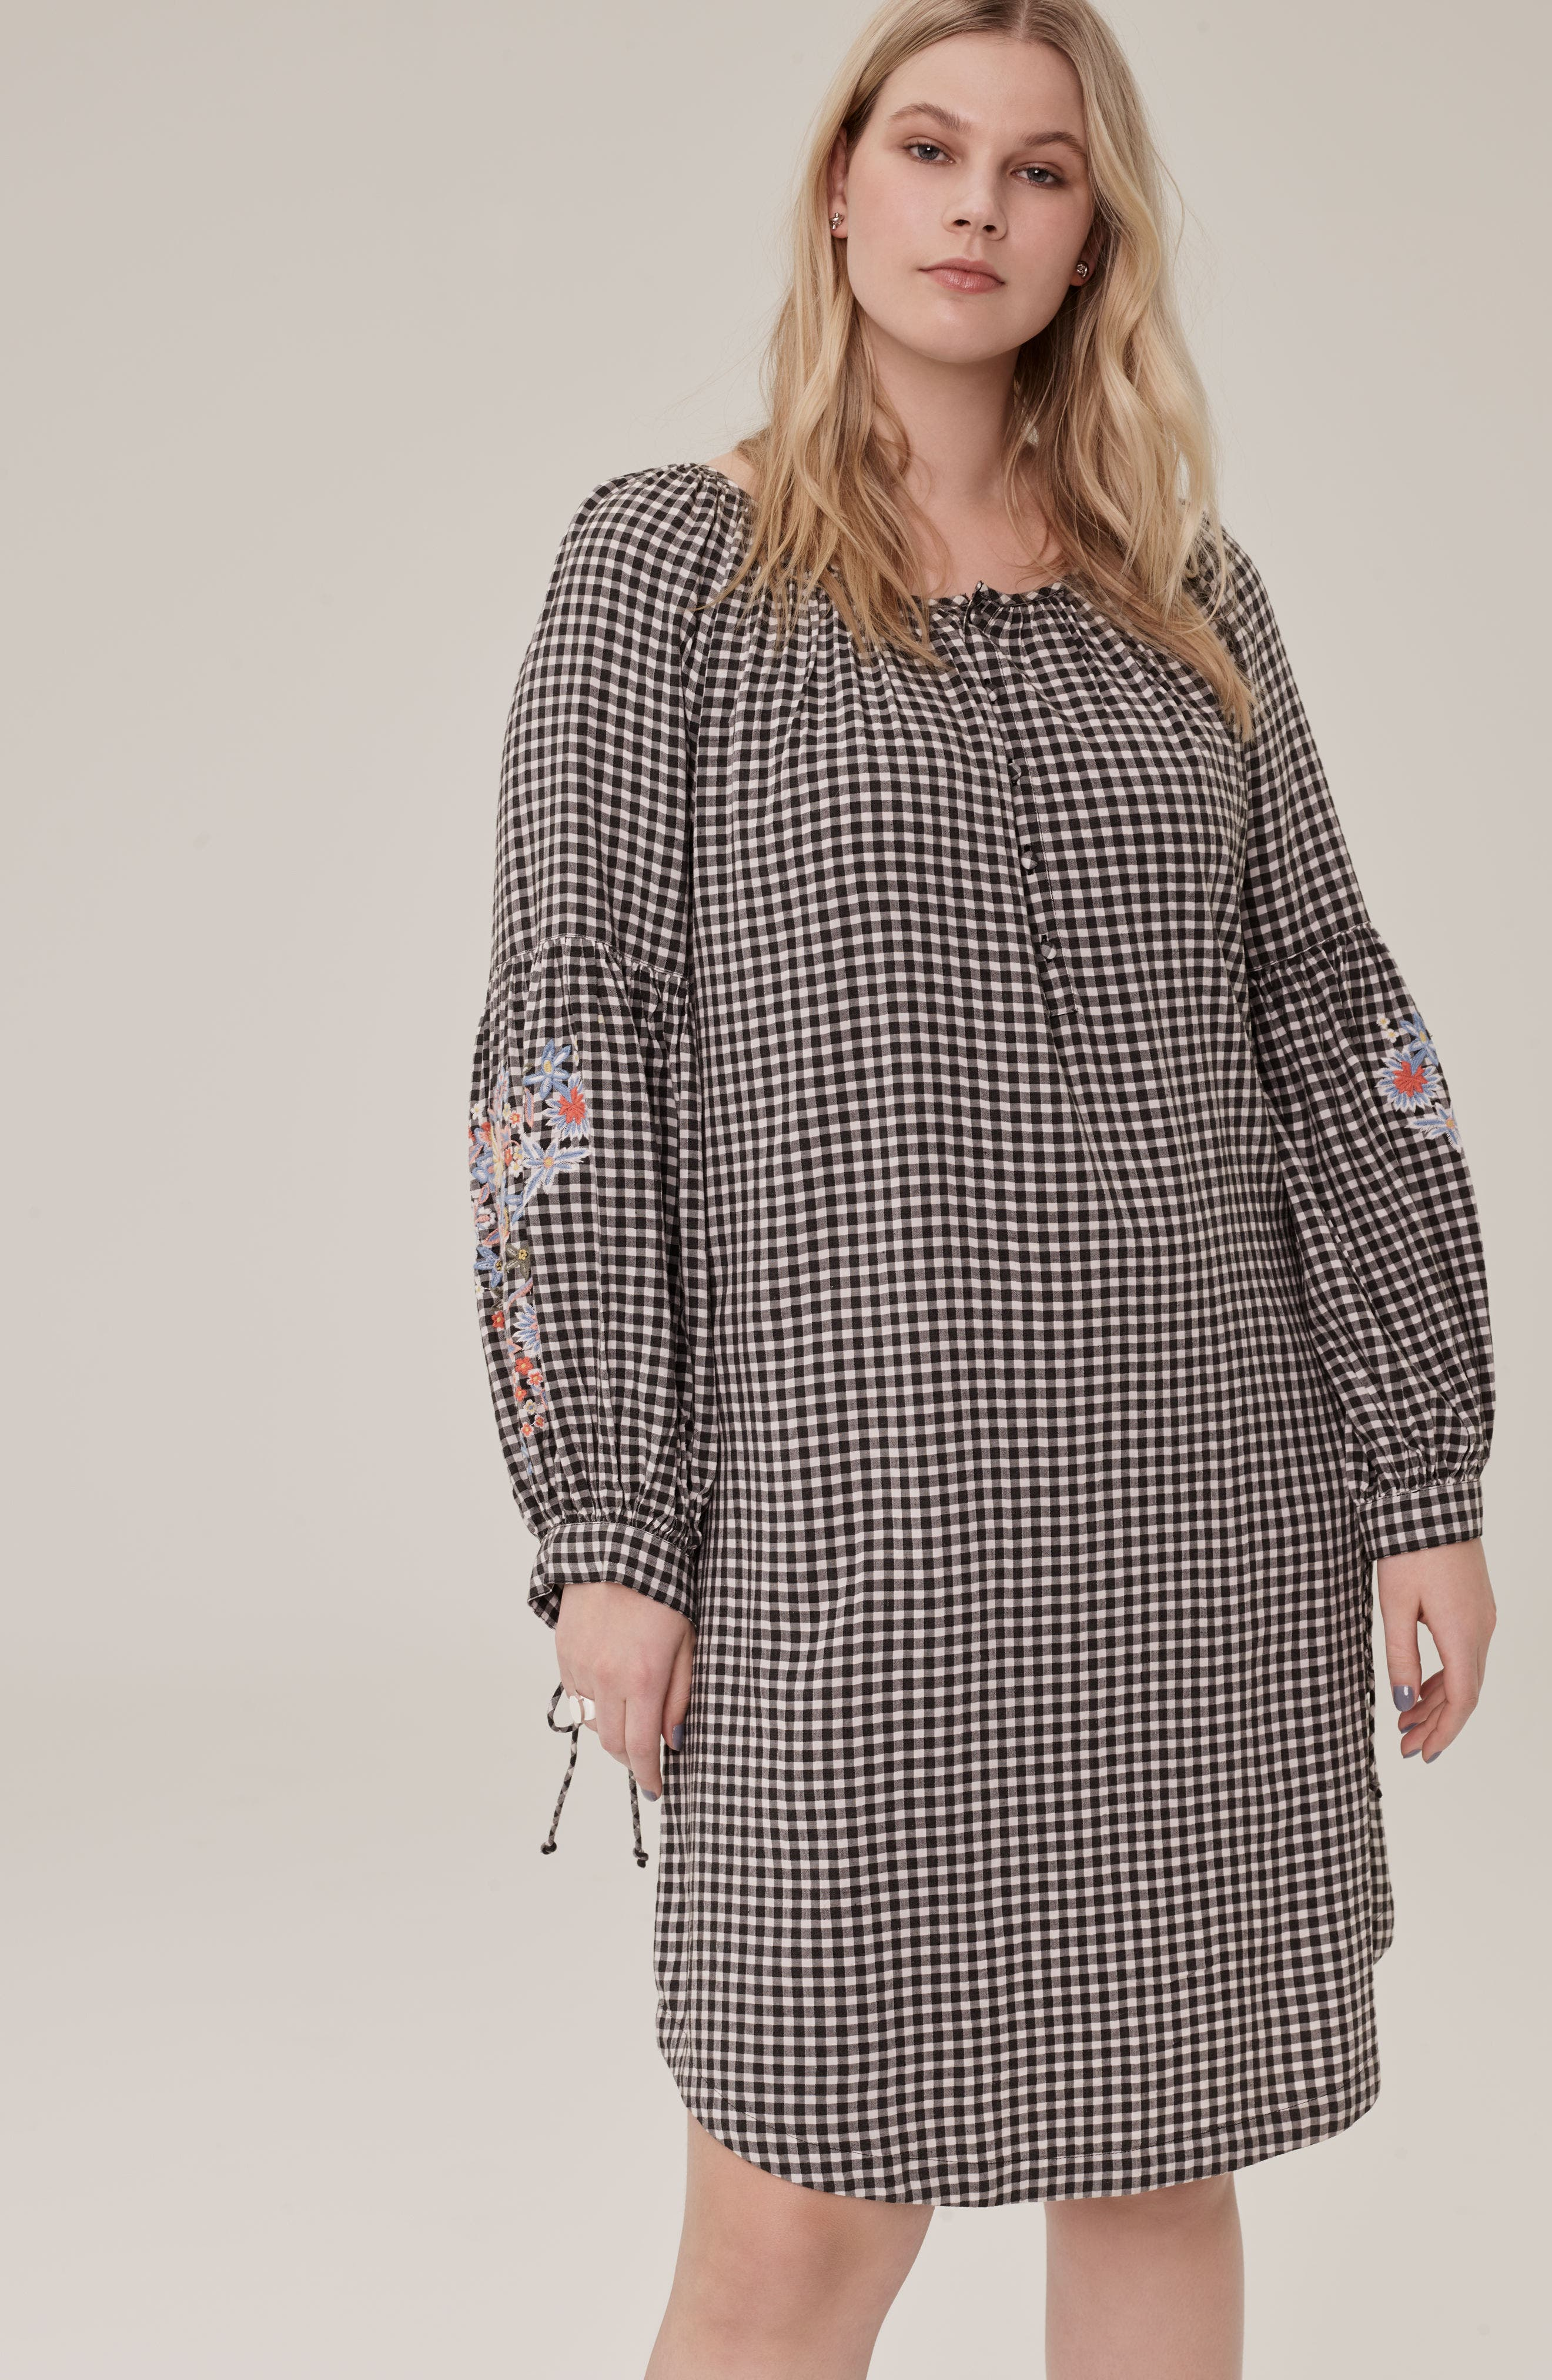 Embroidered Puff Sleeve Gingham Shift Dress,                             Alternate thumbnail 8, color,                             001